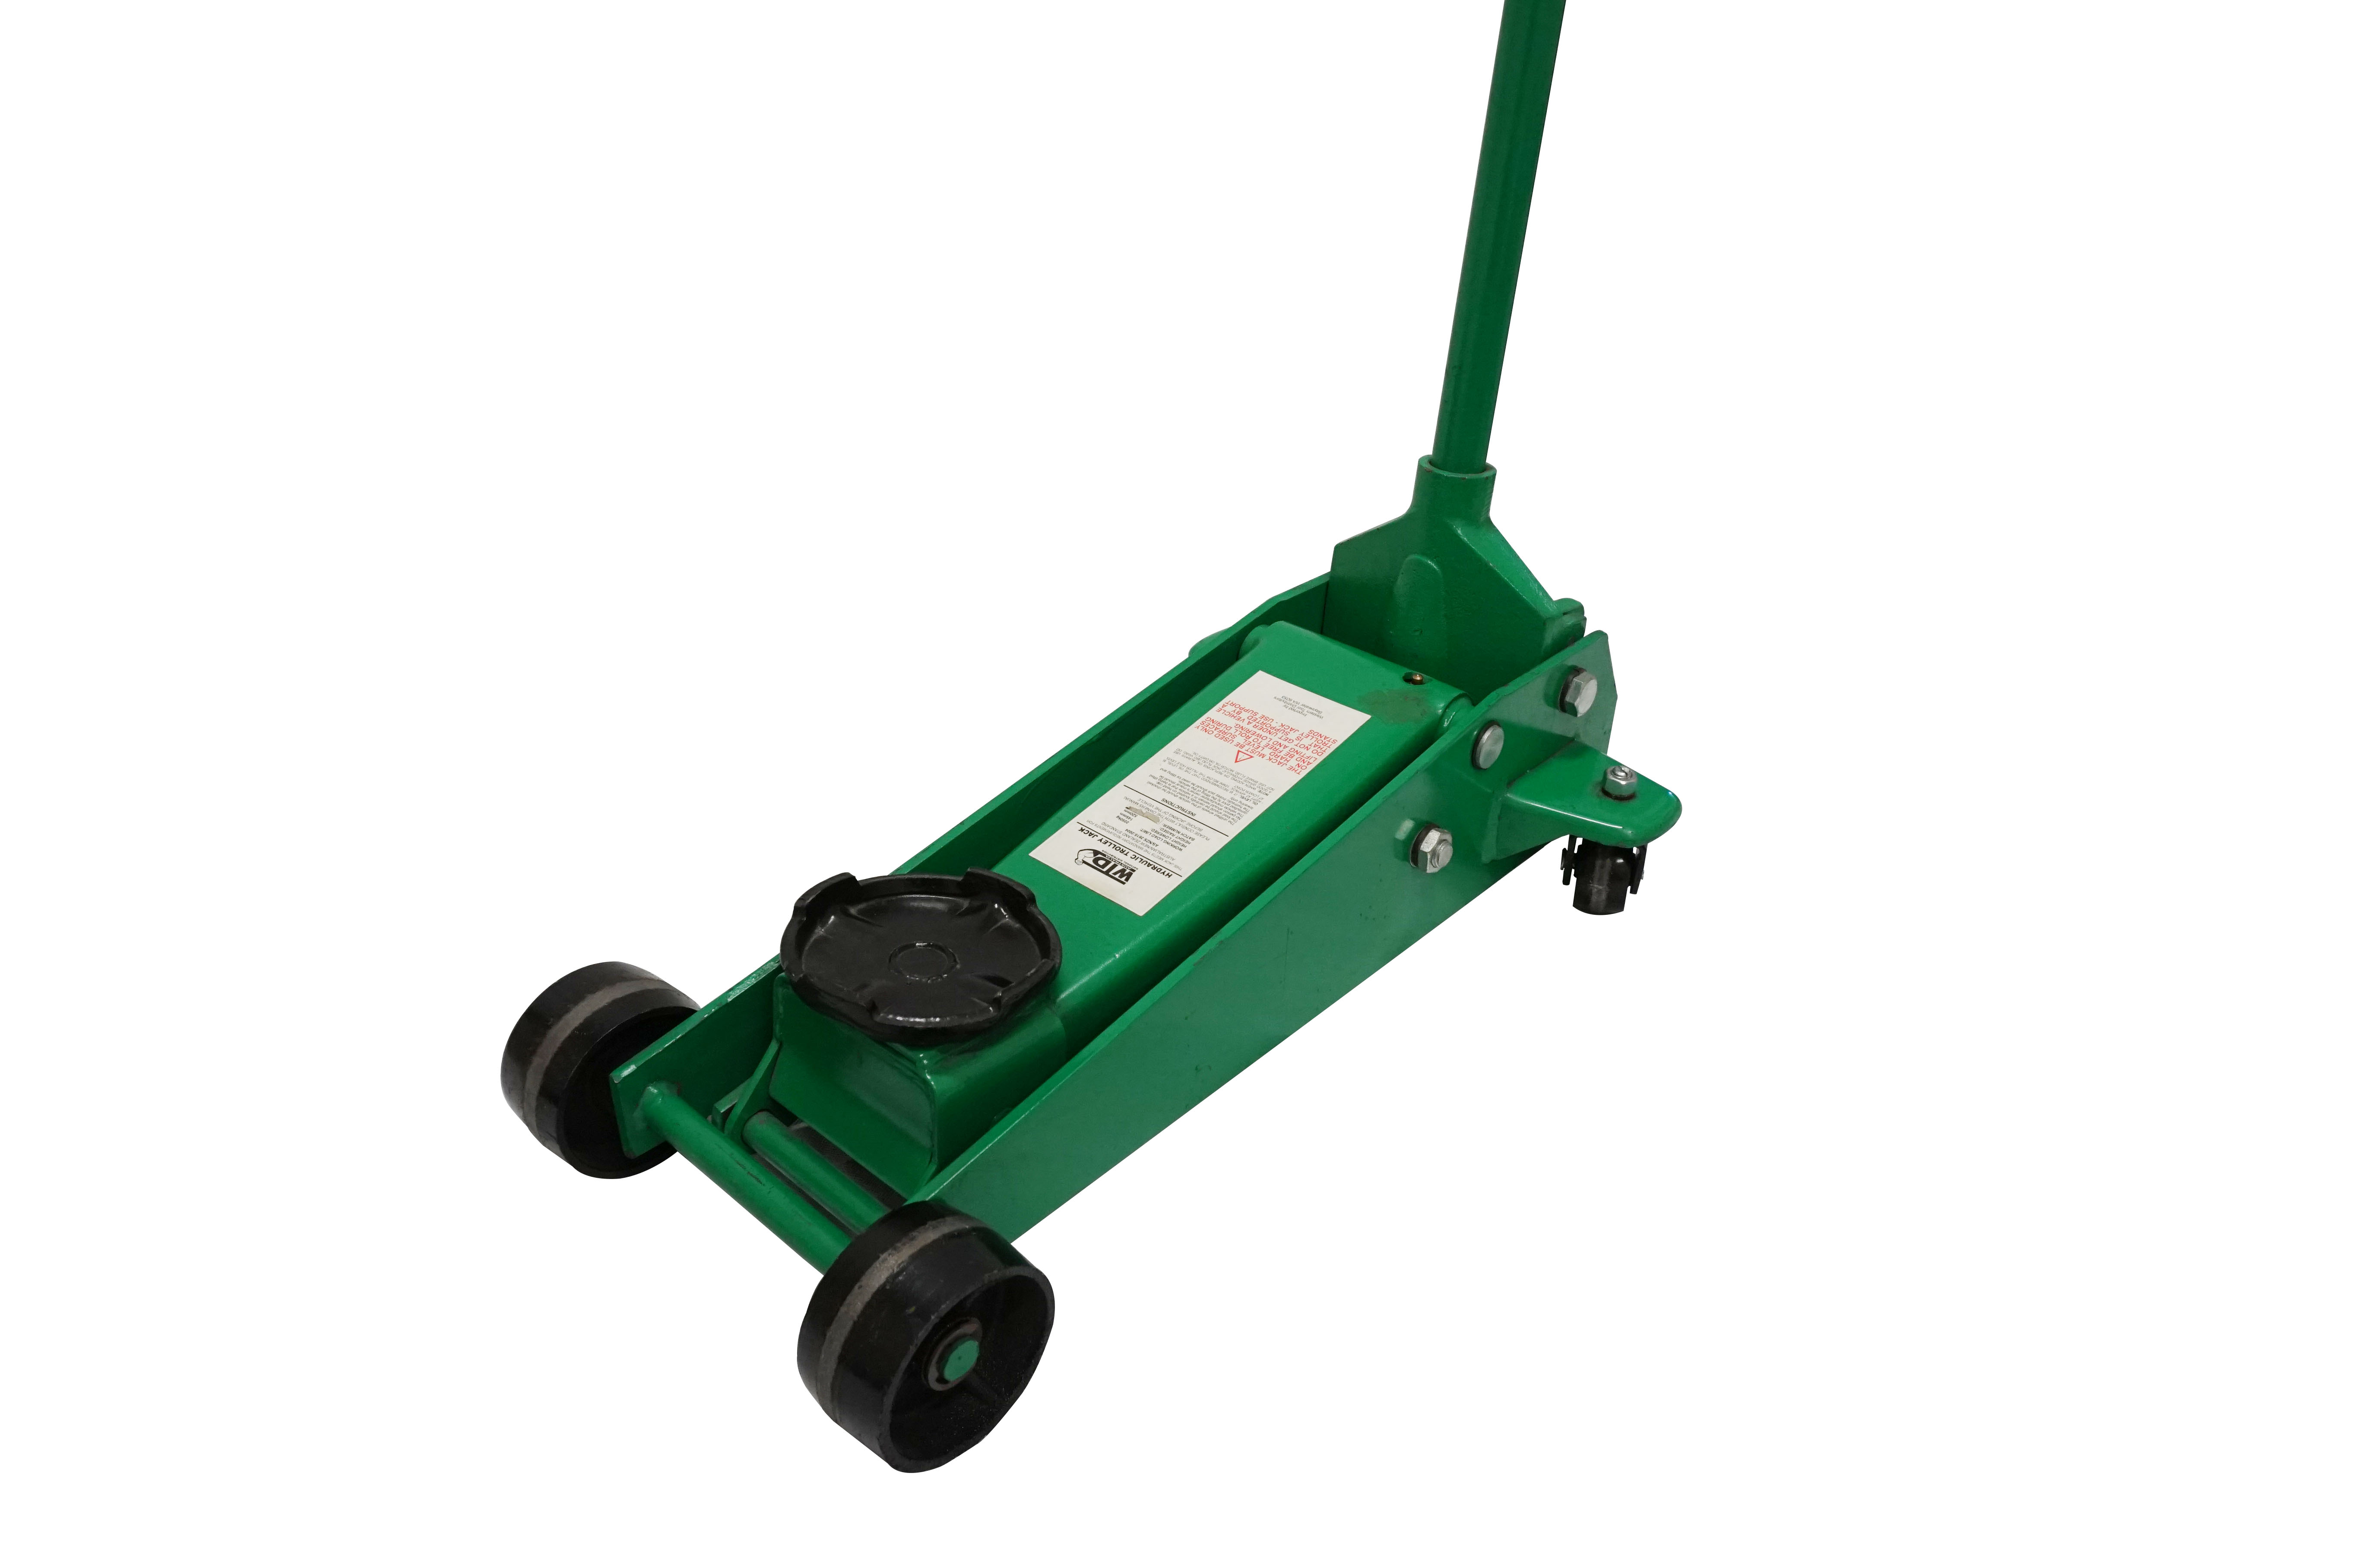 TROLLEY JACK 2250KG HEAVY DUTY GARAGE & WORKSHOP WTDHF2250